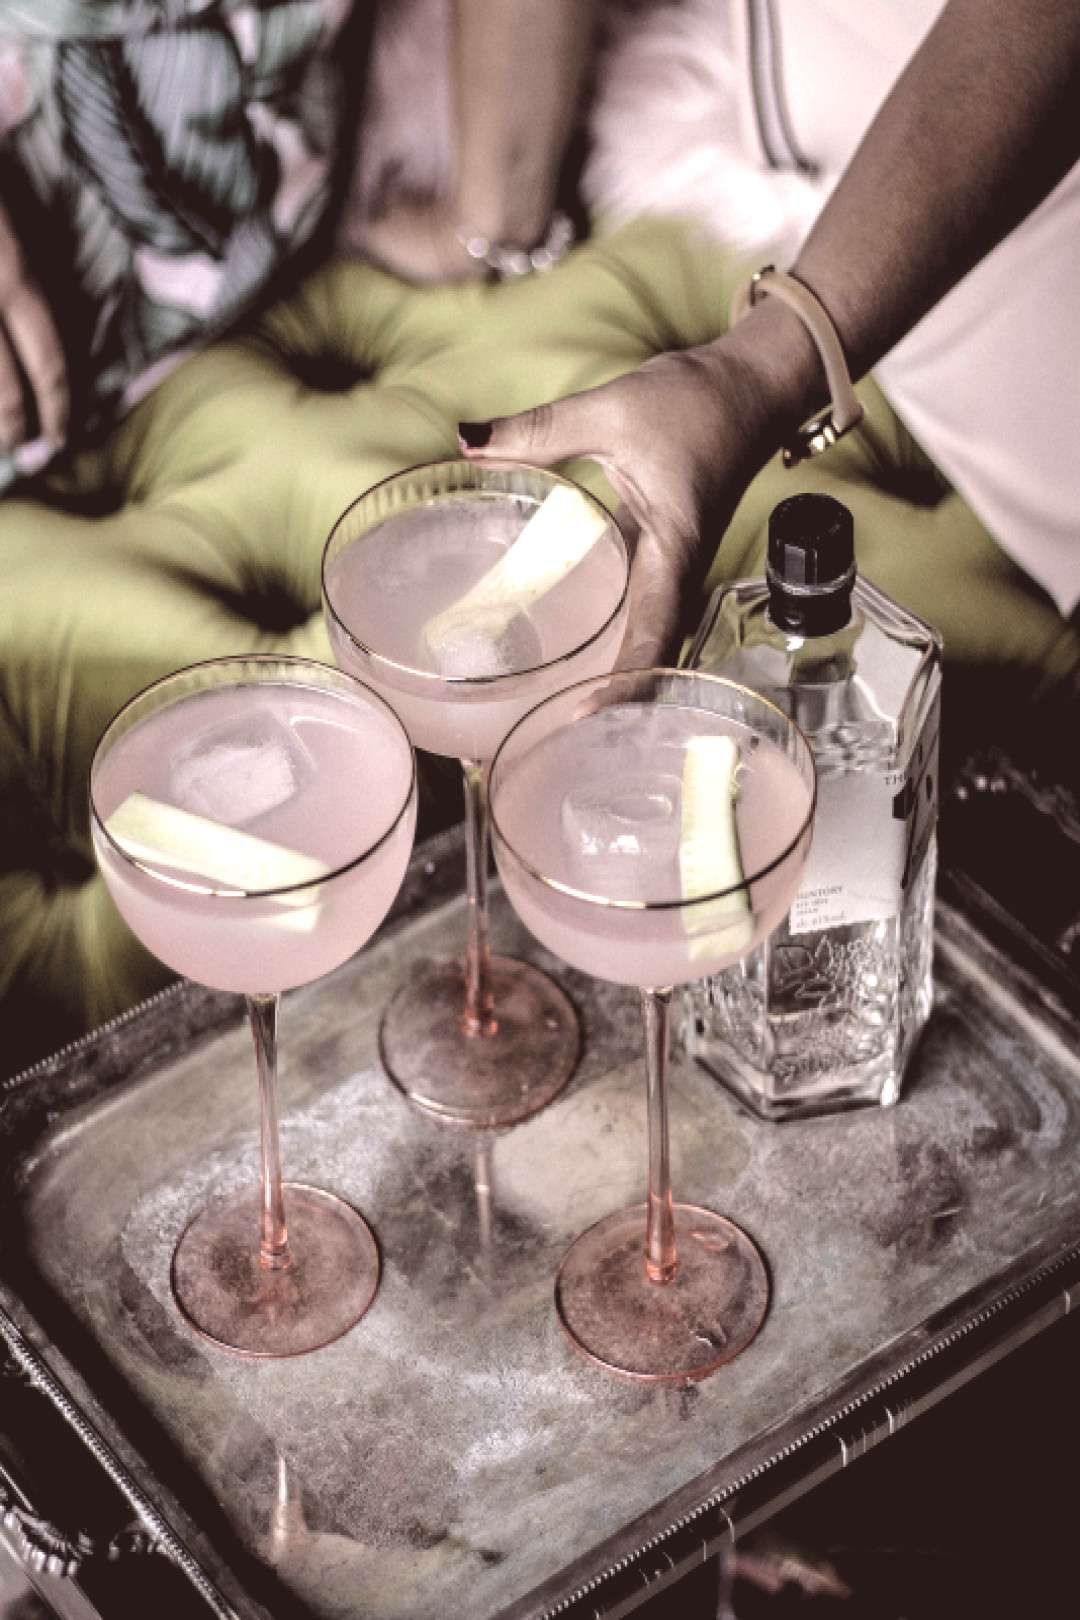 Girly drinks for warm weather. These cocktails are so refreshing and delicious.